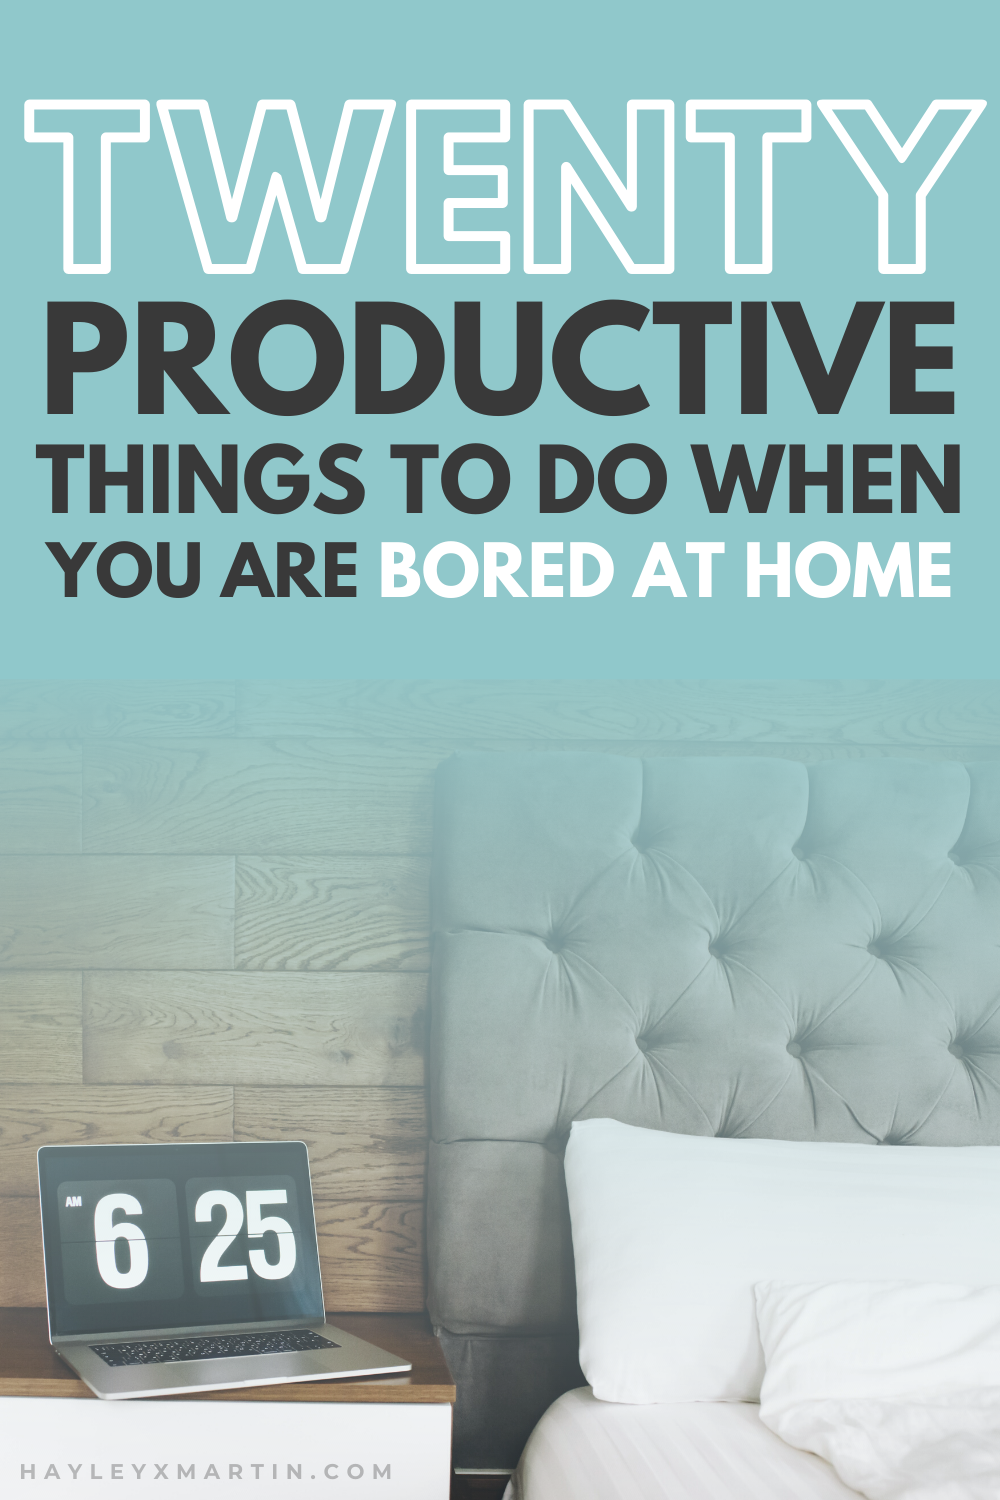 20 PRODUCTIVE THINGS TO DO WHEN BORED AT HOME | hayleyxmartin